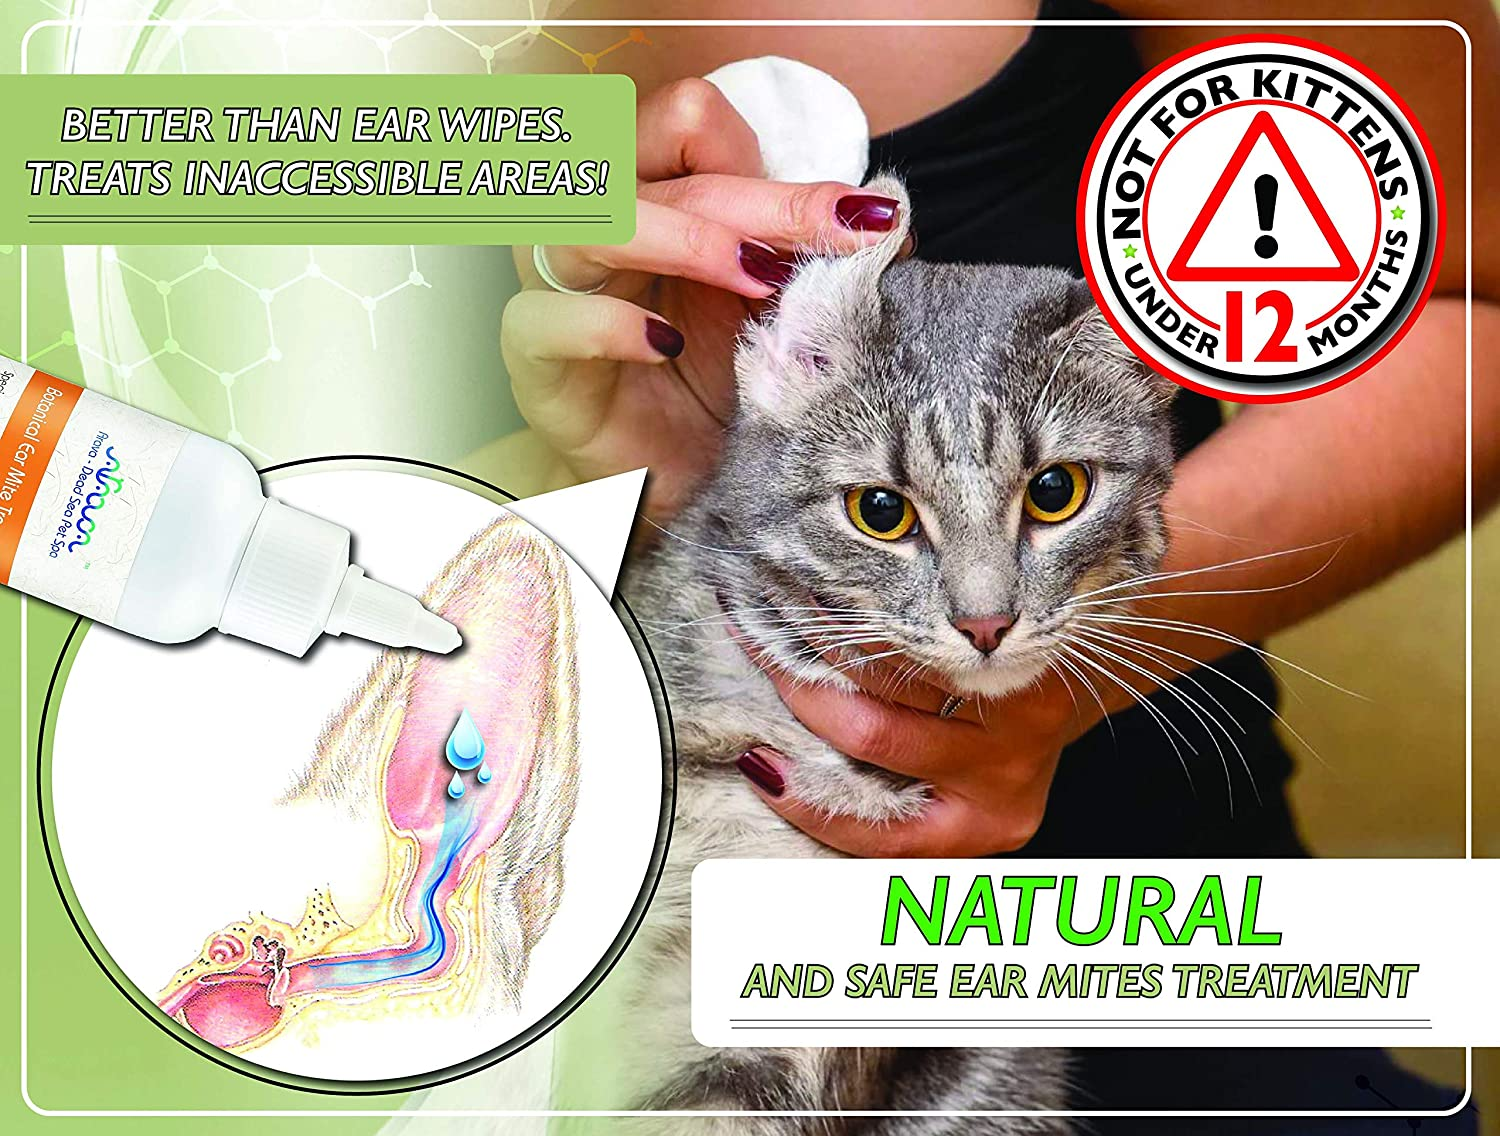 Arava Natural Ear Mite Treatment - for Dogs & Cats - Pet Ear Mites Infection Cleaner - Treat Inaccessible Areas & Prevent Infections - Healthy Safe Formula with Botanical Extracts & Dead Sea Minerals